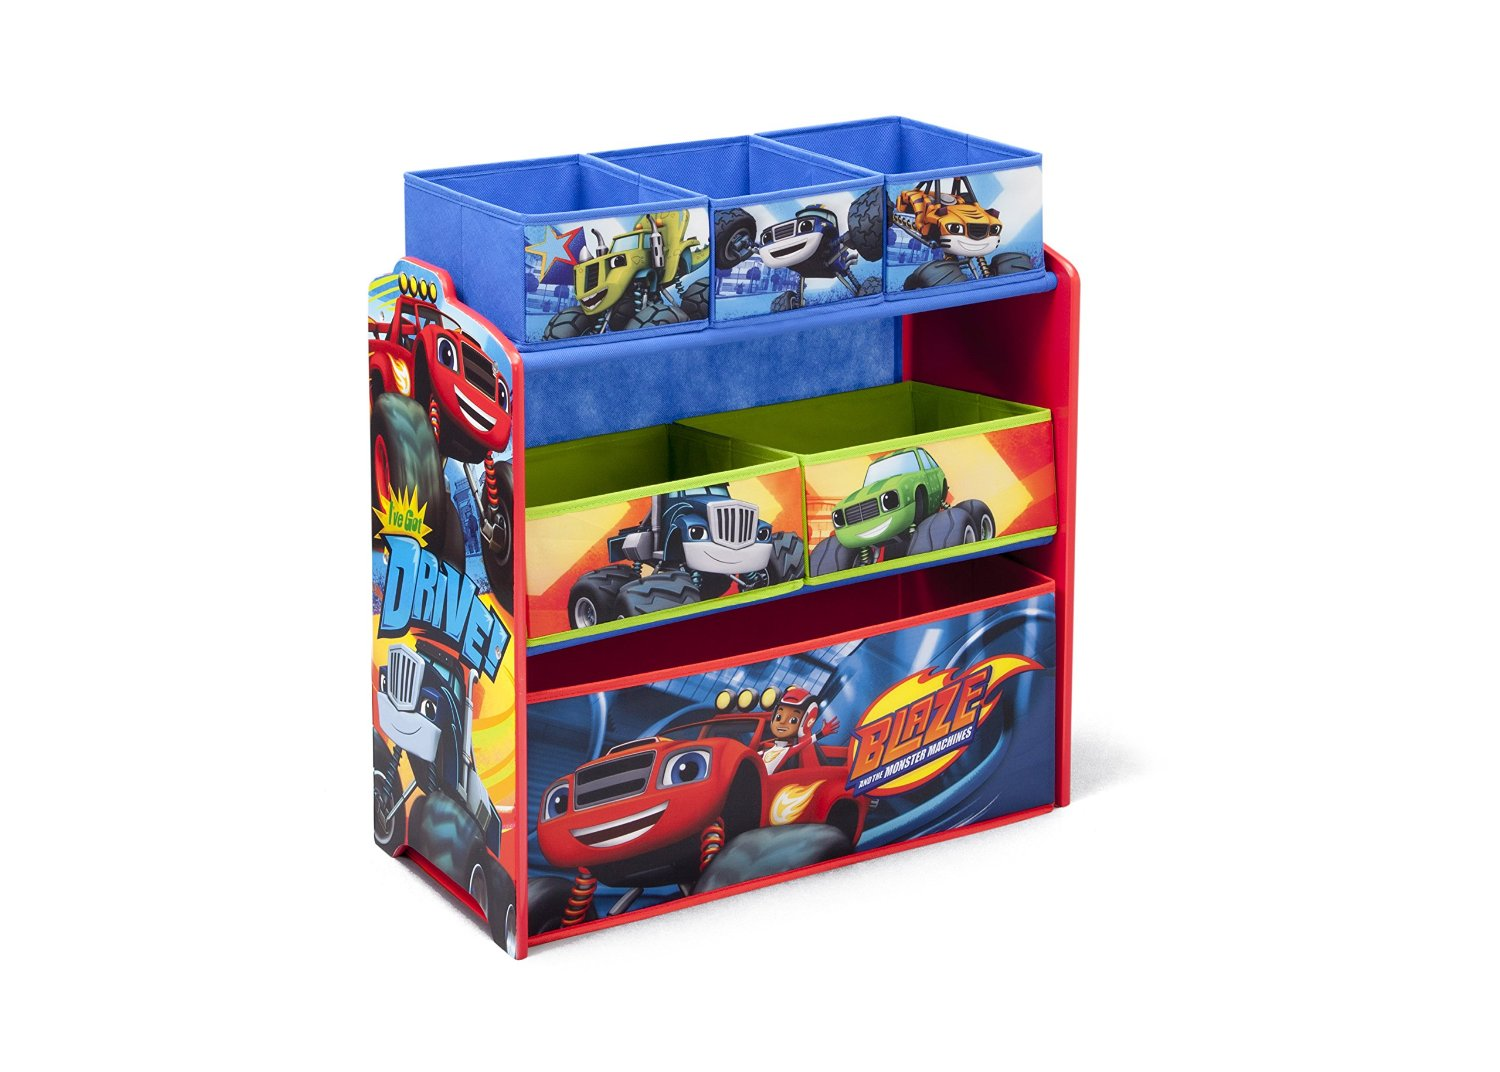 10am-Cars Toy Organizer